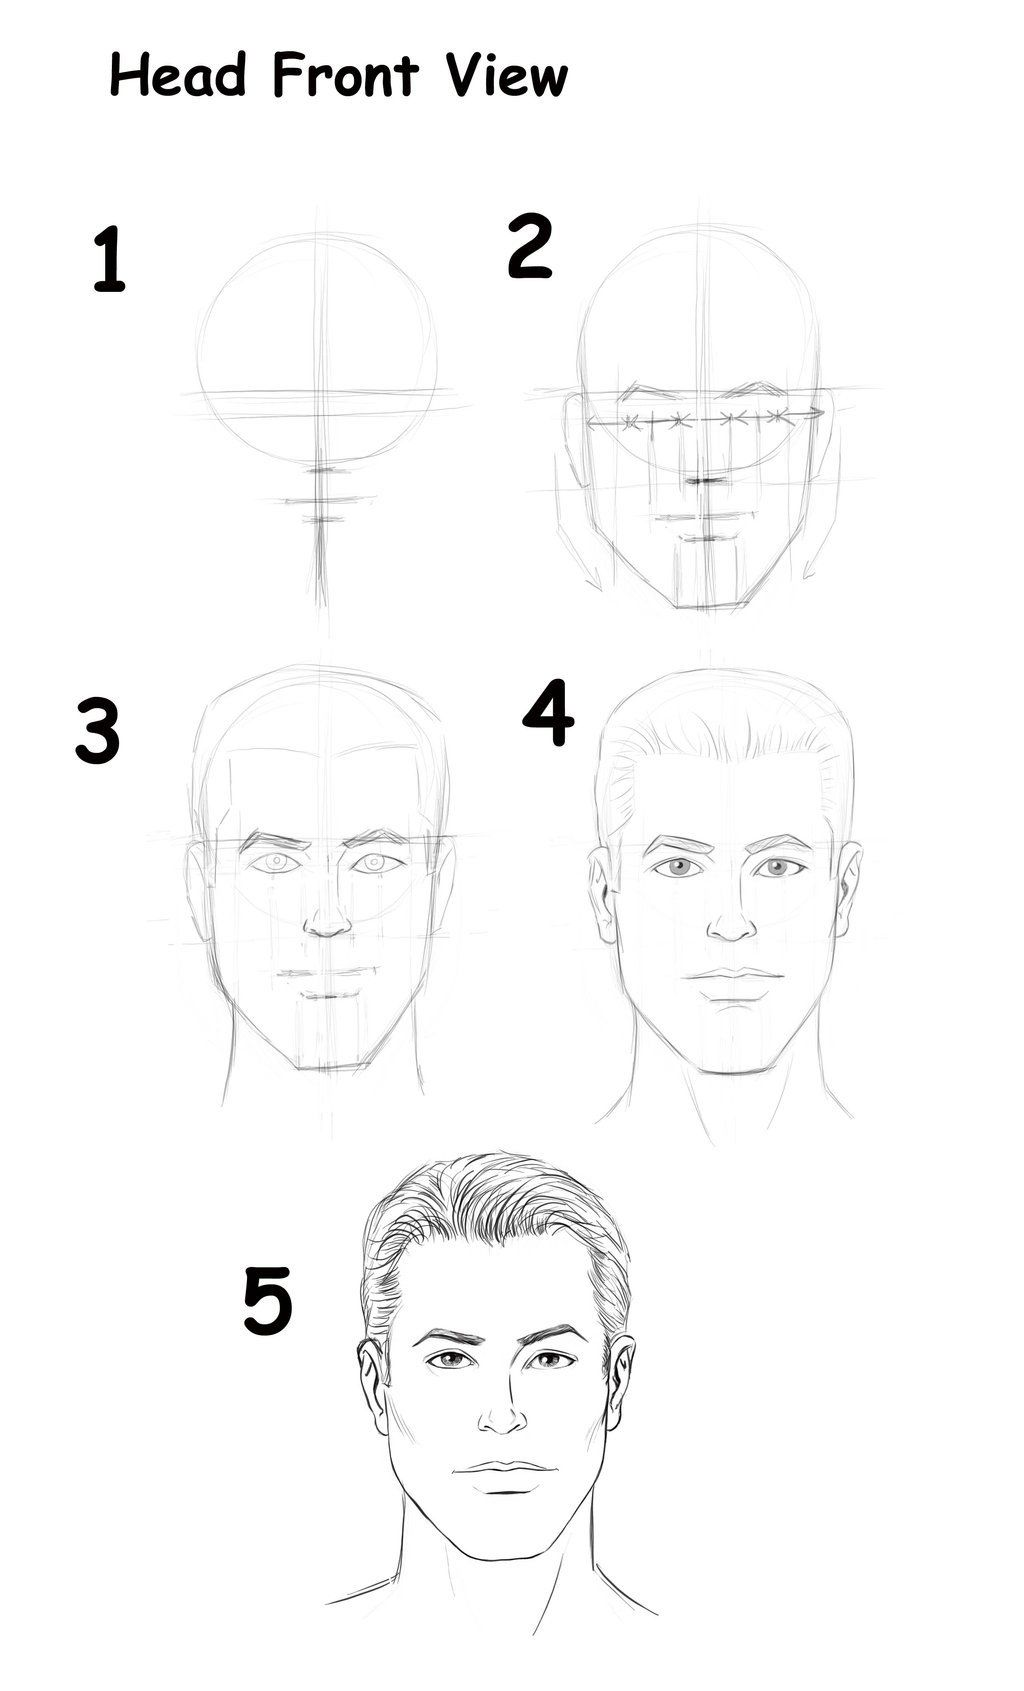 More Head Tutorials Do Not Forget To Keep Your Hand Loose While Sketching And Always Have Fun